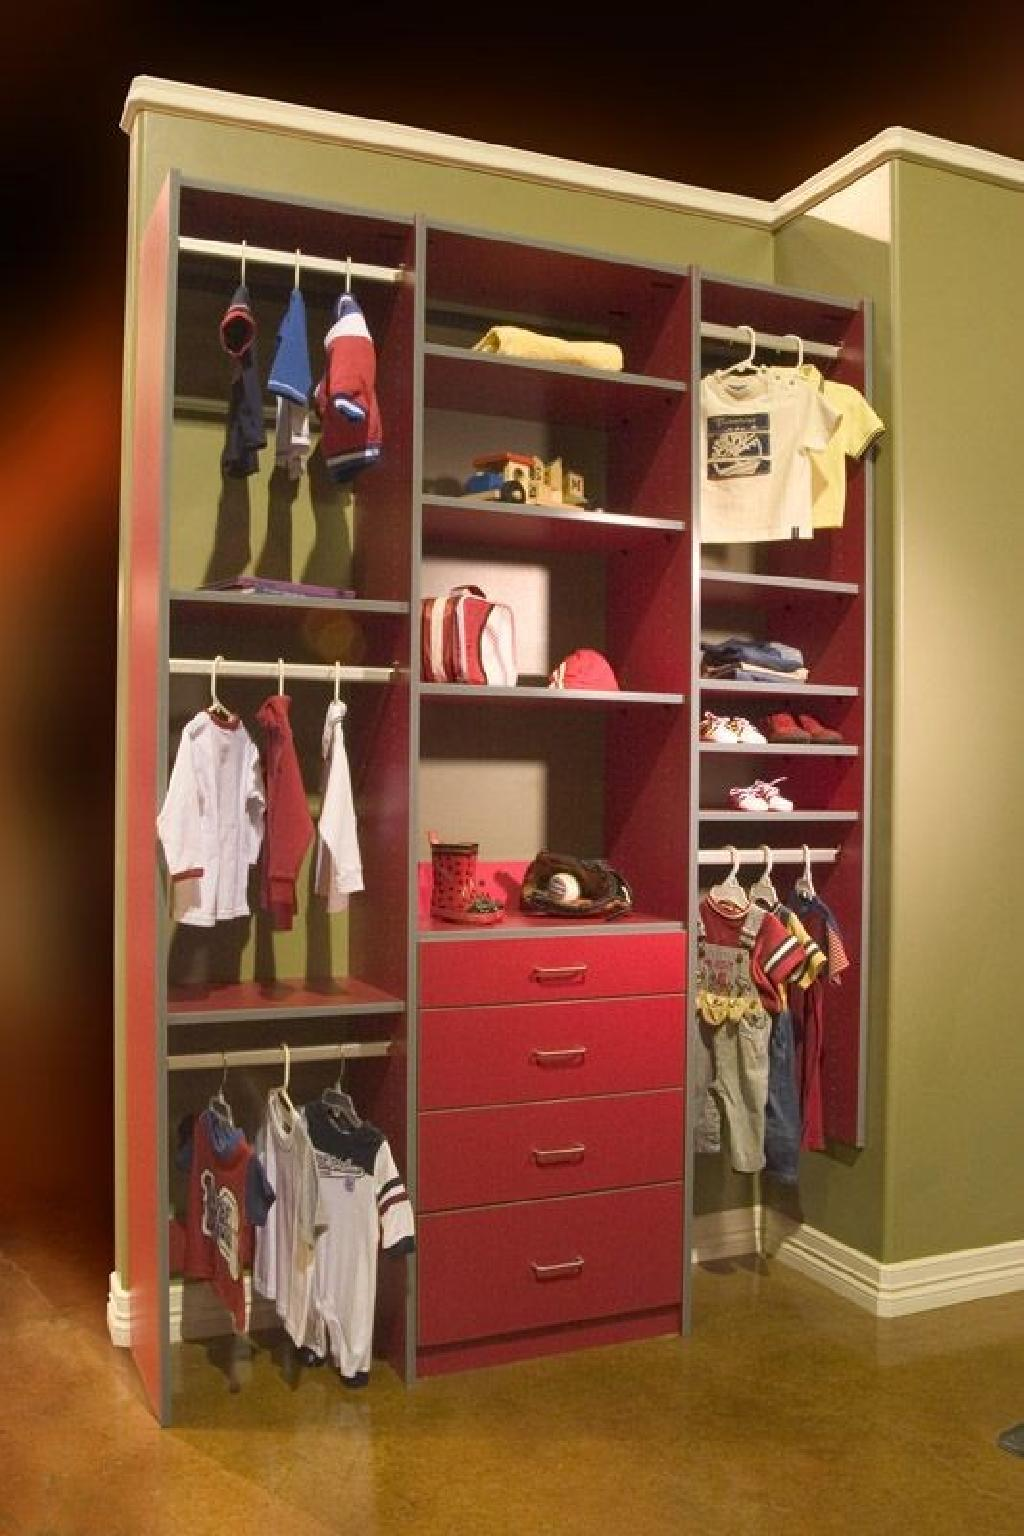 kahala hite hawaii closet reviews systems belene info mall